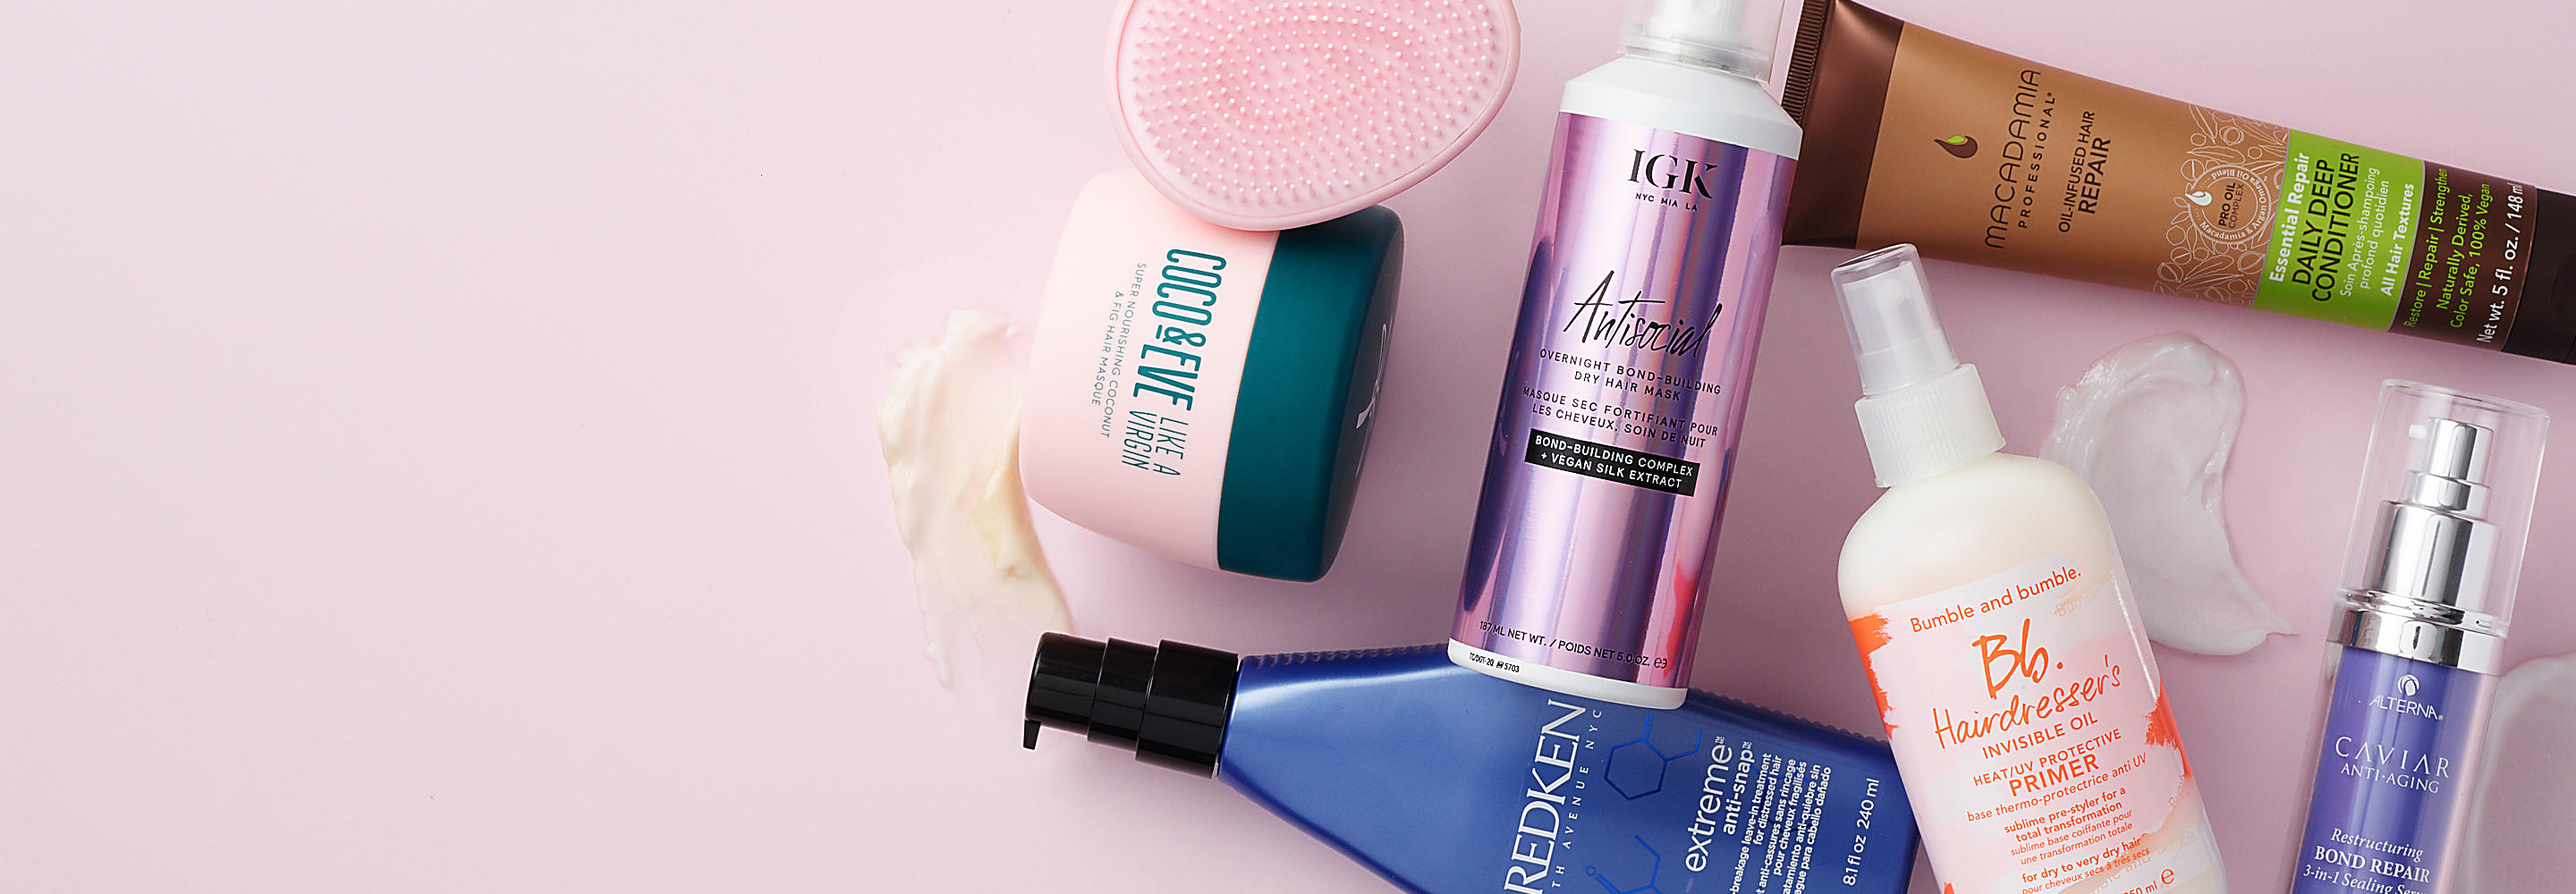 This month's Hair Heroes is Hair Treatments. Discover our six product picks to help you achieve your hair goals.